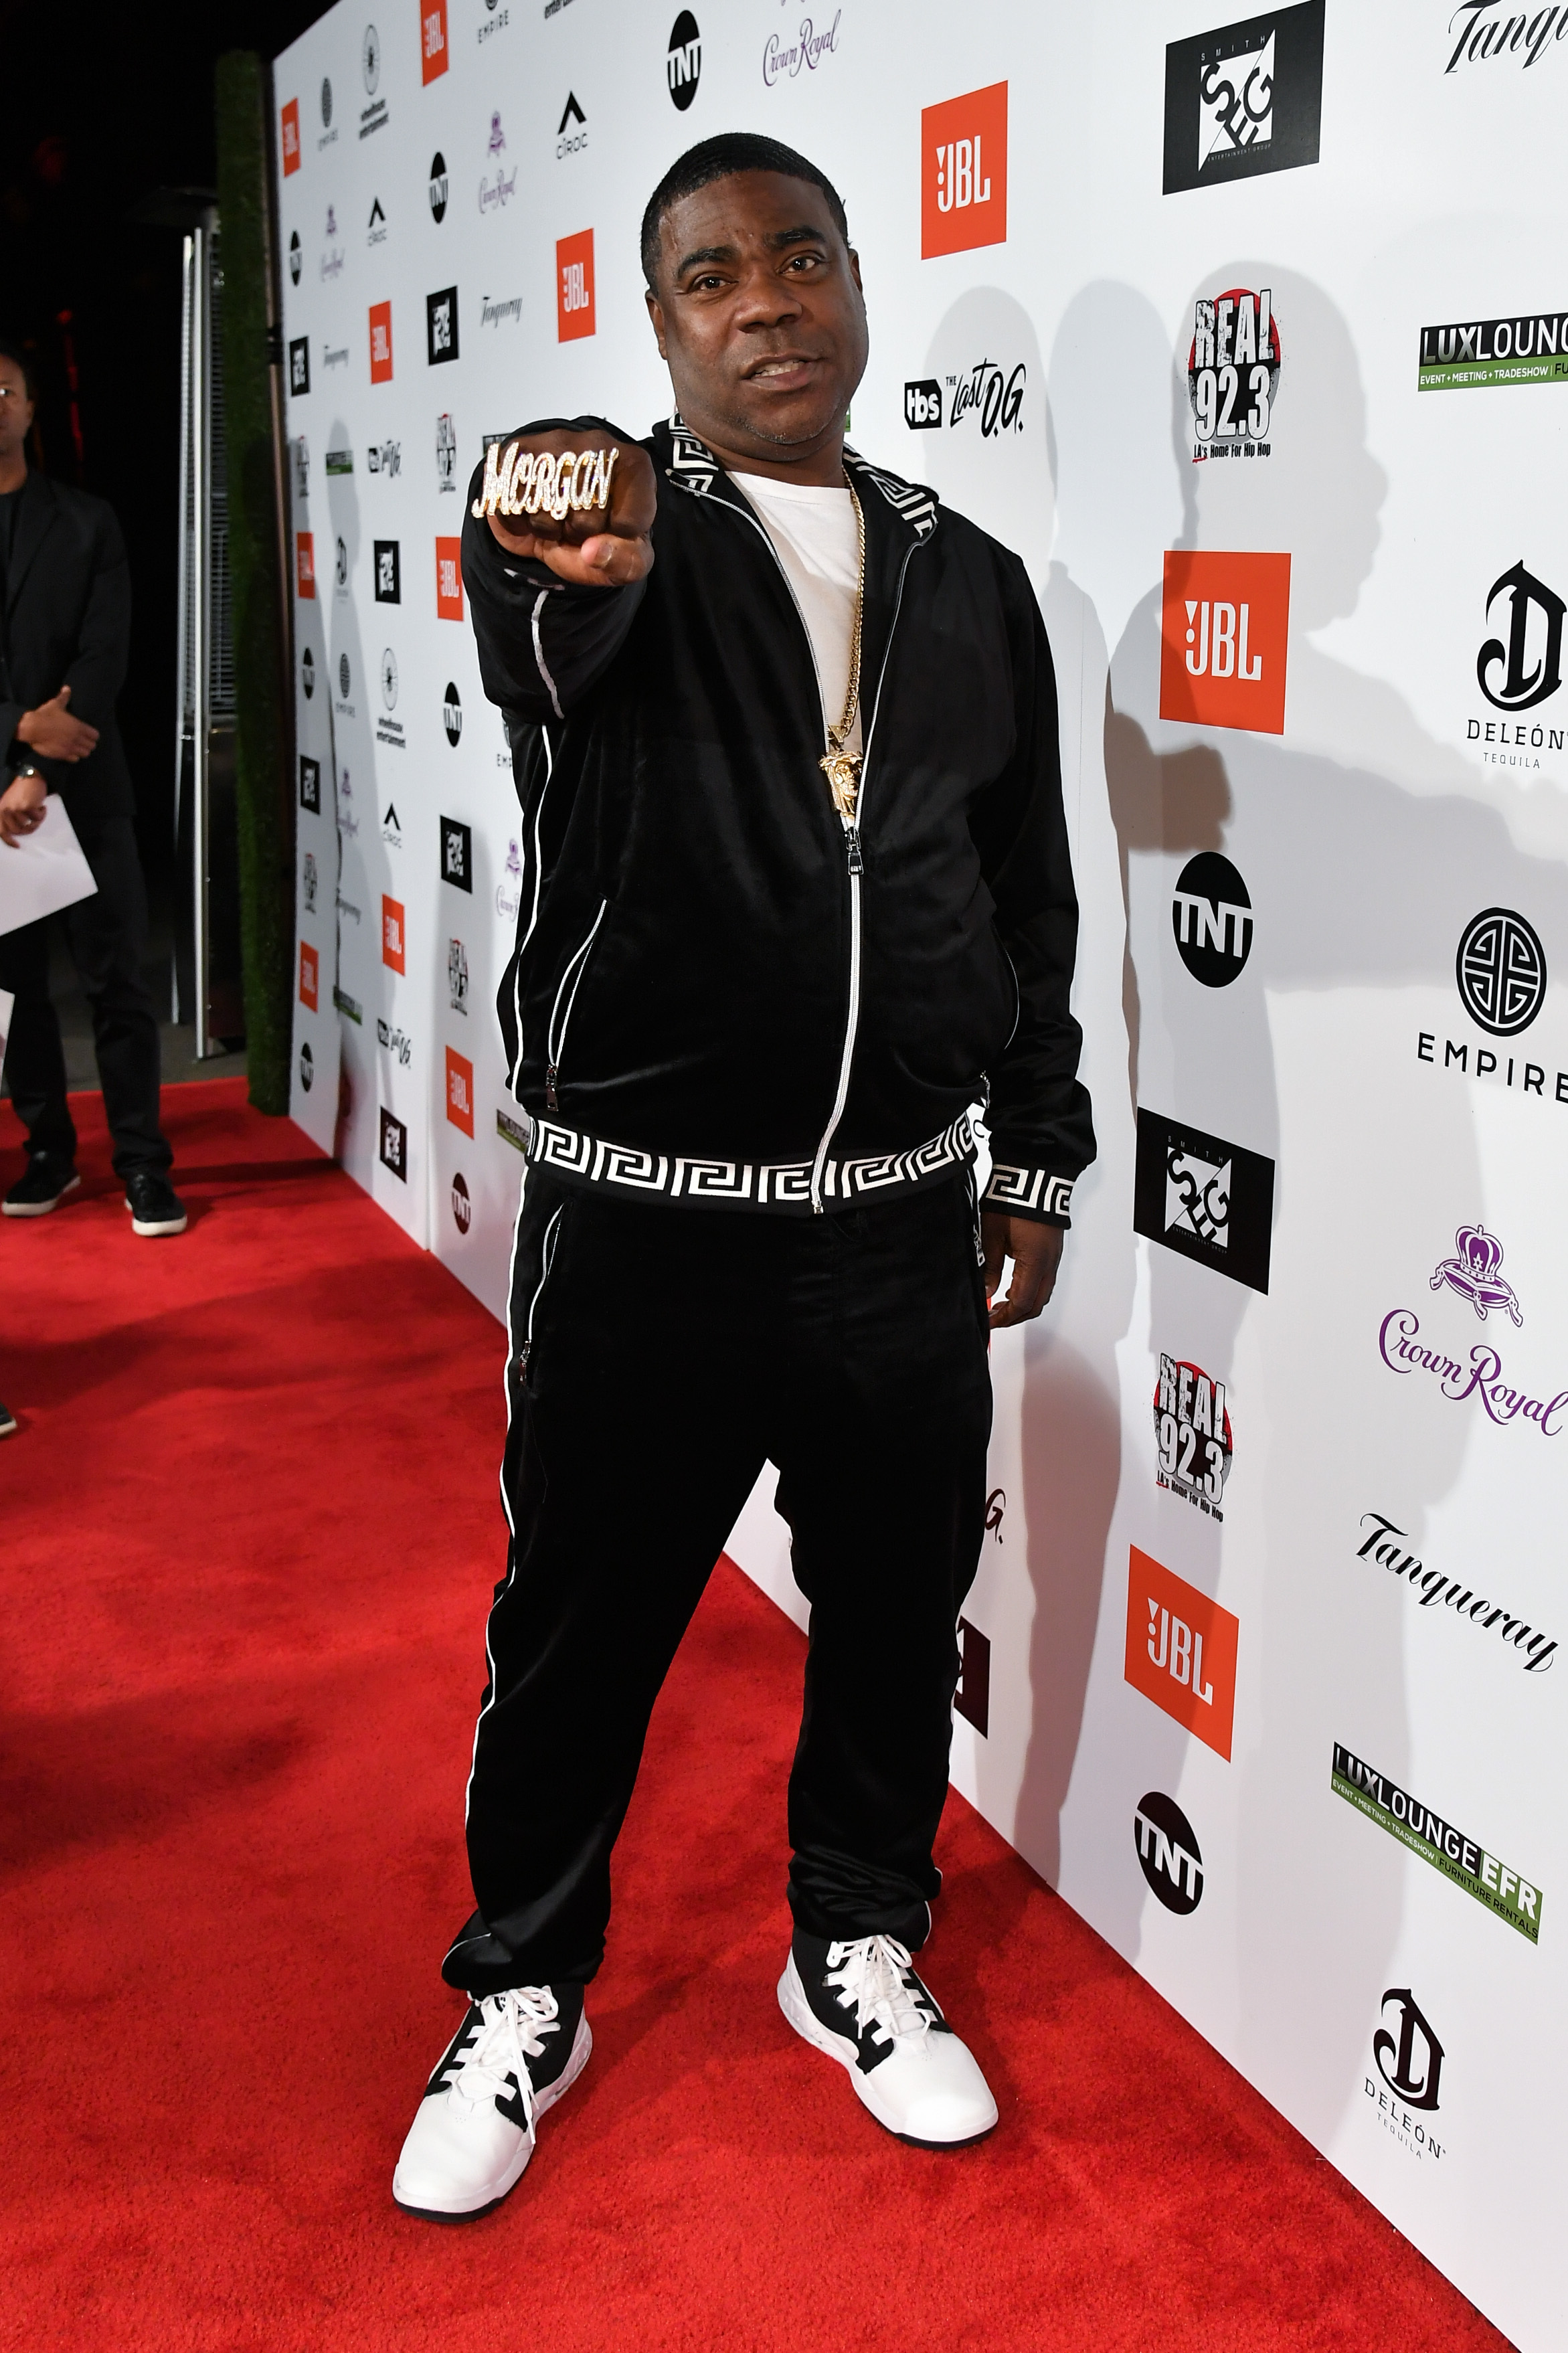 Tracy Morgan attends Kenny Smith's annual NBA All Star Bash powered by Ciroc at Paramount Studios in Los Angeles on Feb. 16, 2018.